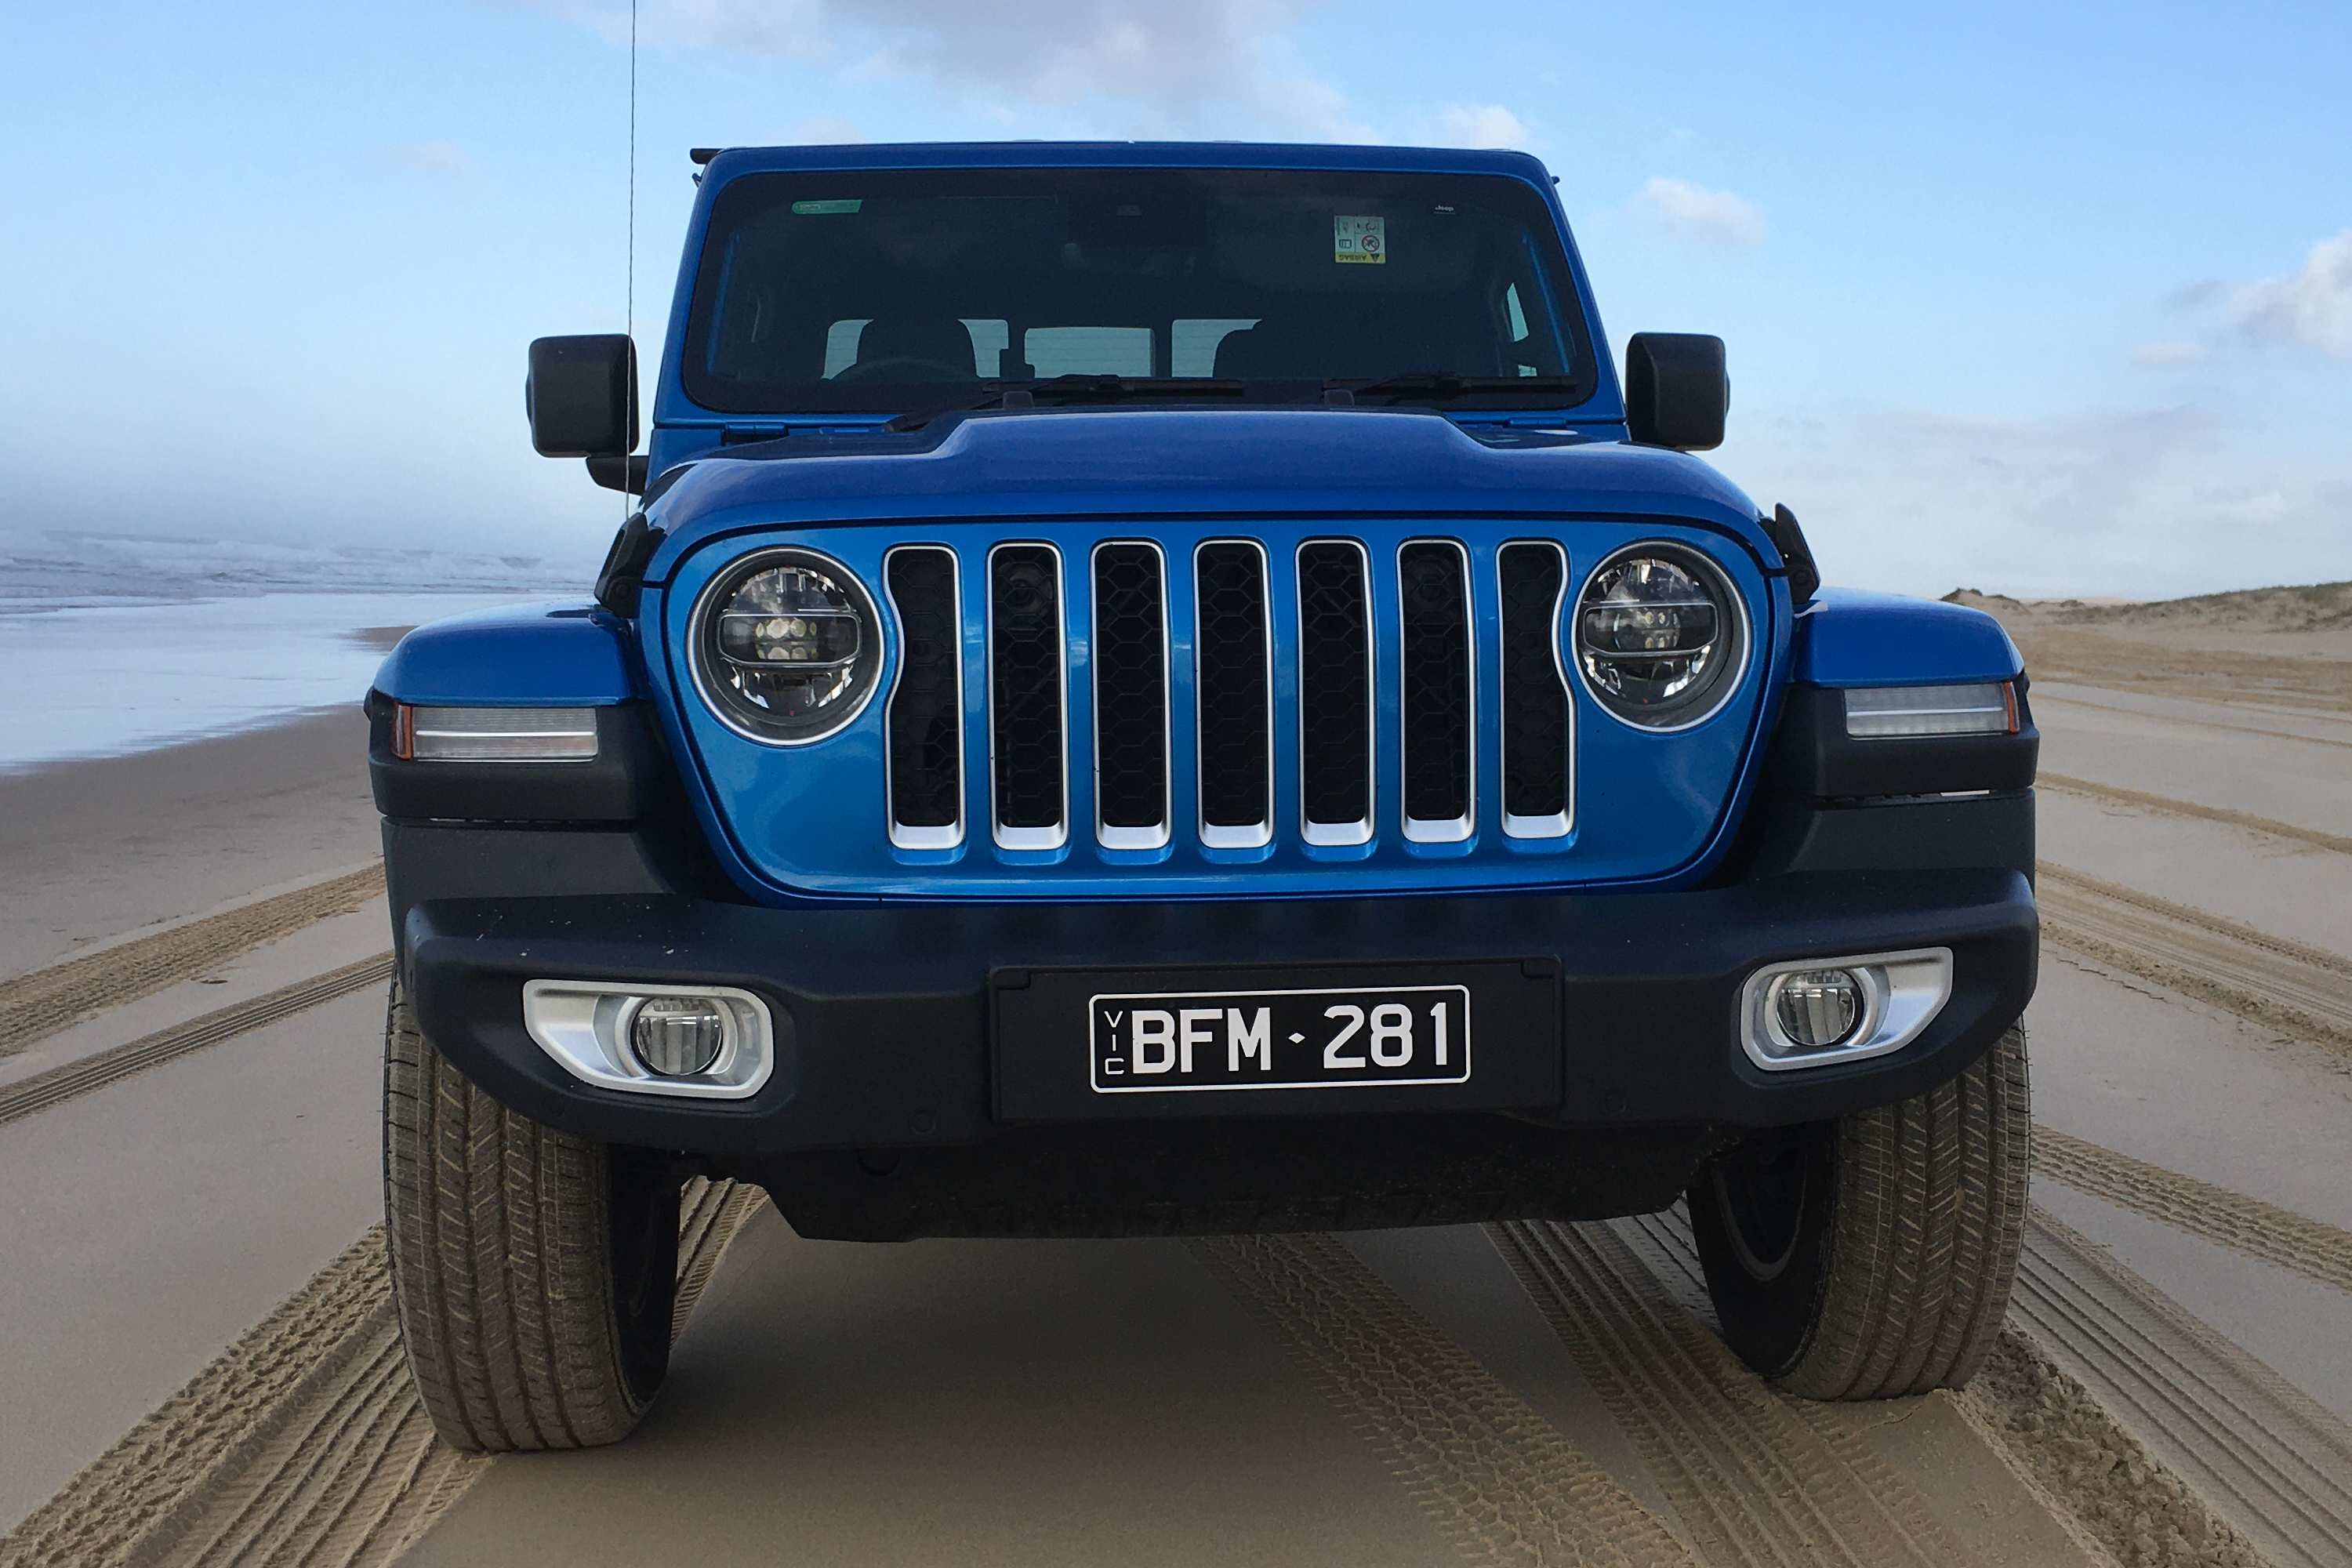 Jeep Gladiator Overland 4WD Ute grill